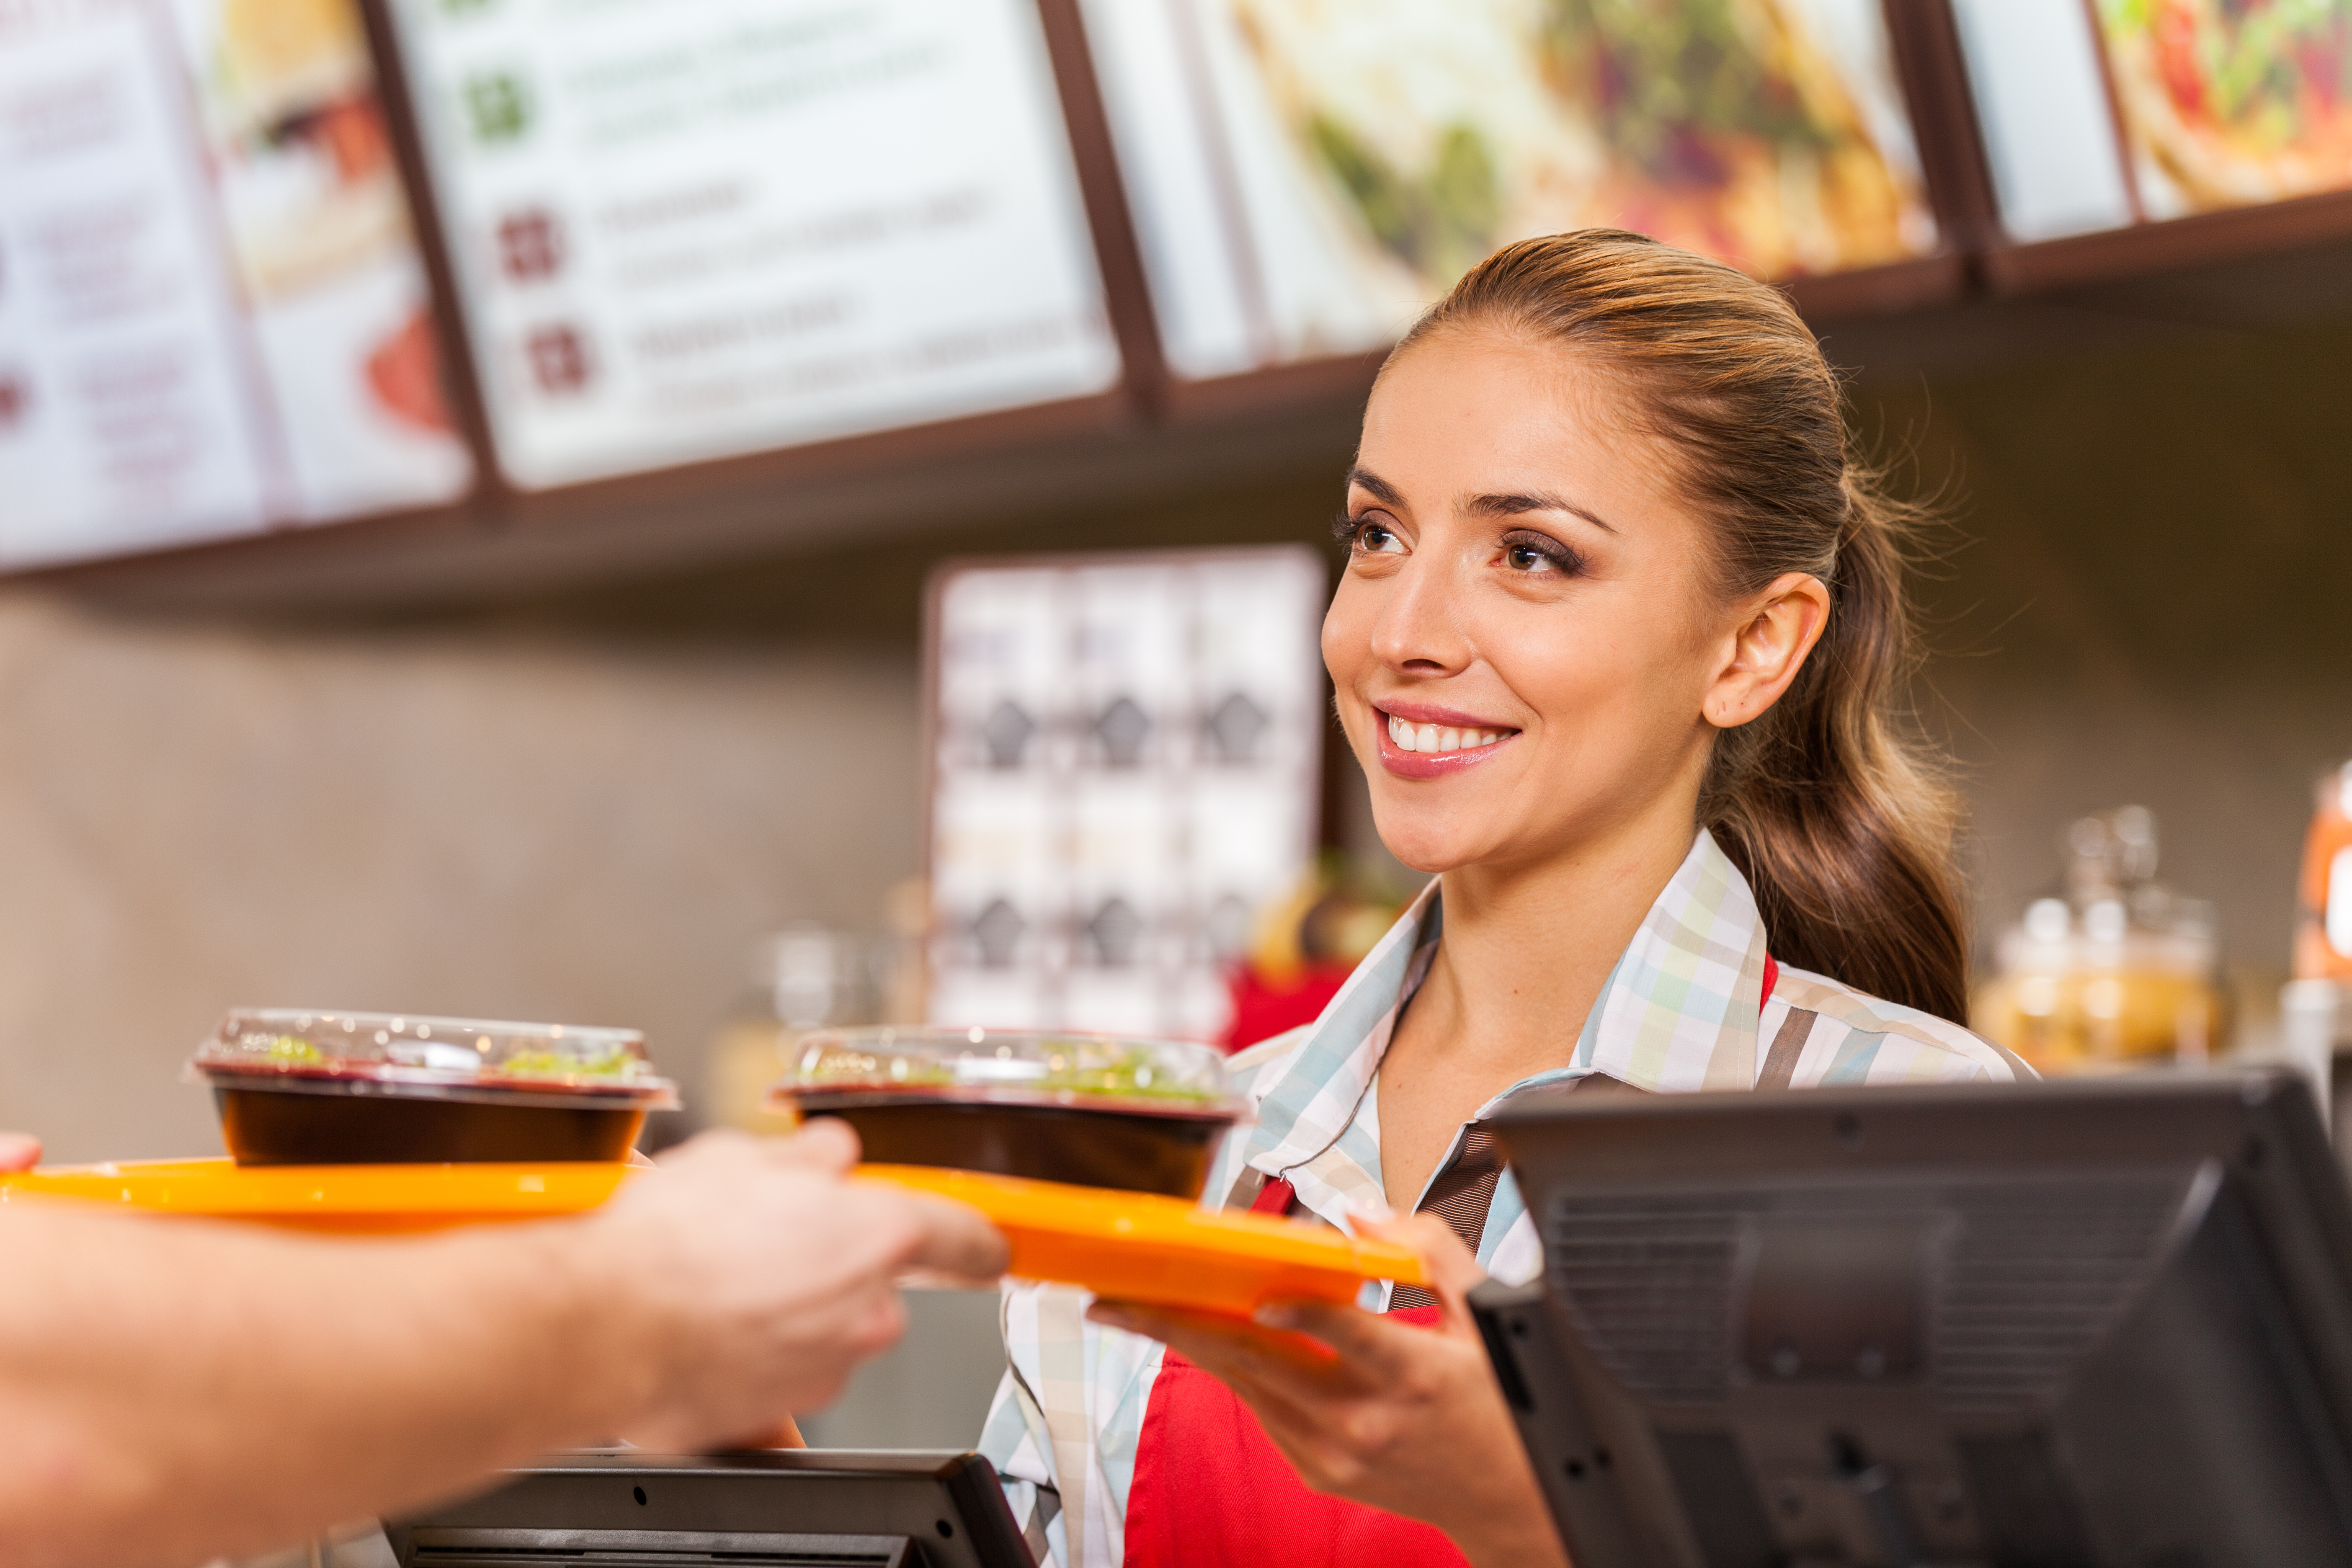 fast food service, customer service, fast food ordering, friendly service